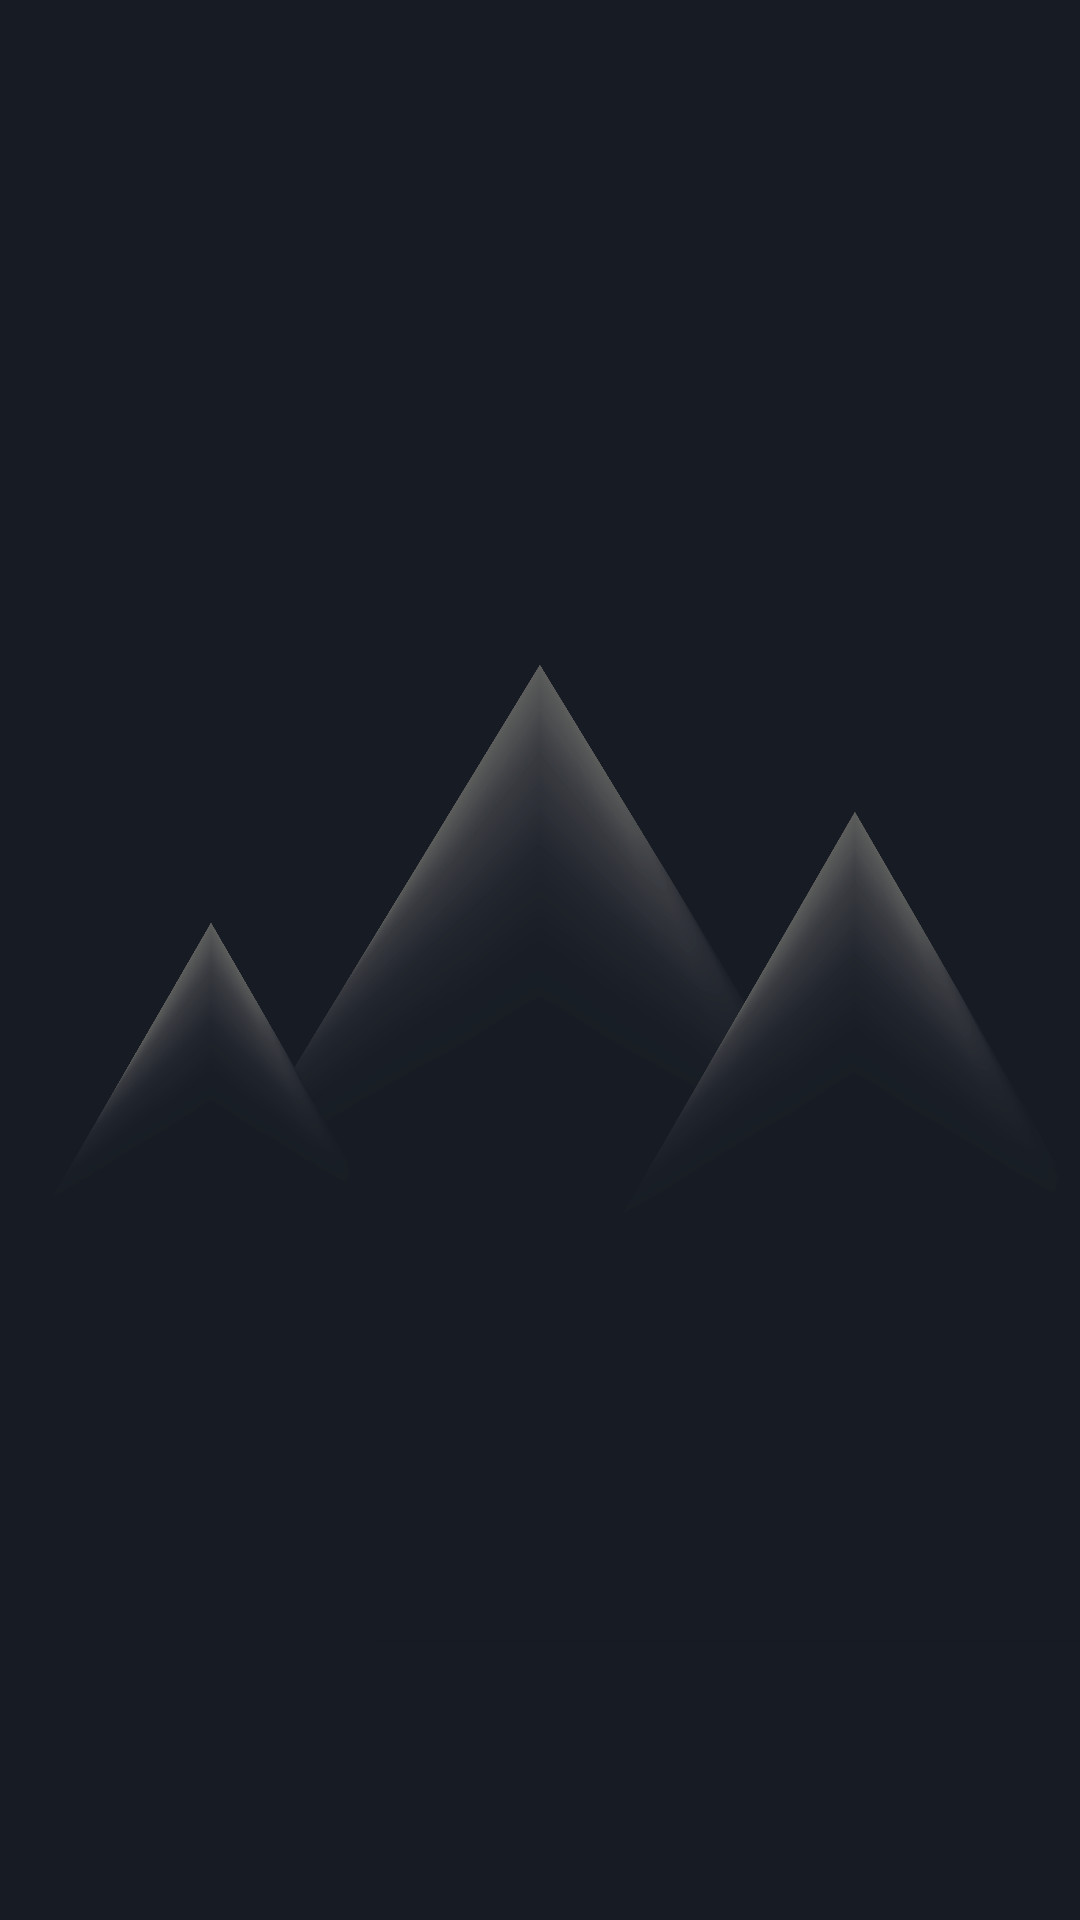 1080x1920 minimalistic mountain peaks minimalistic mobile wallpaper